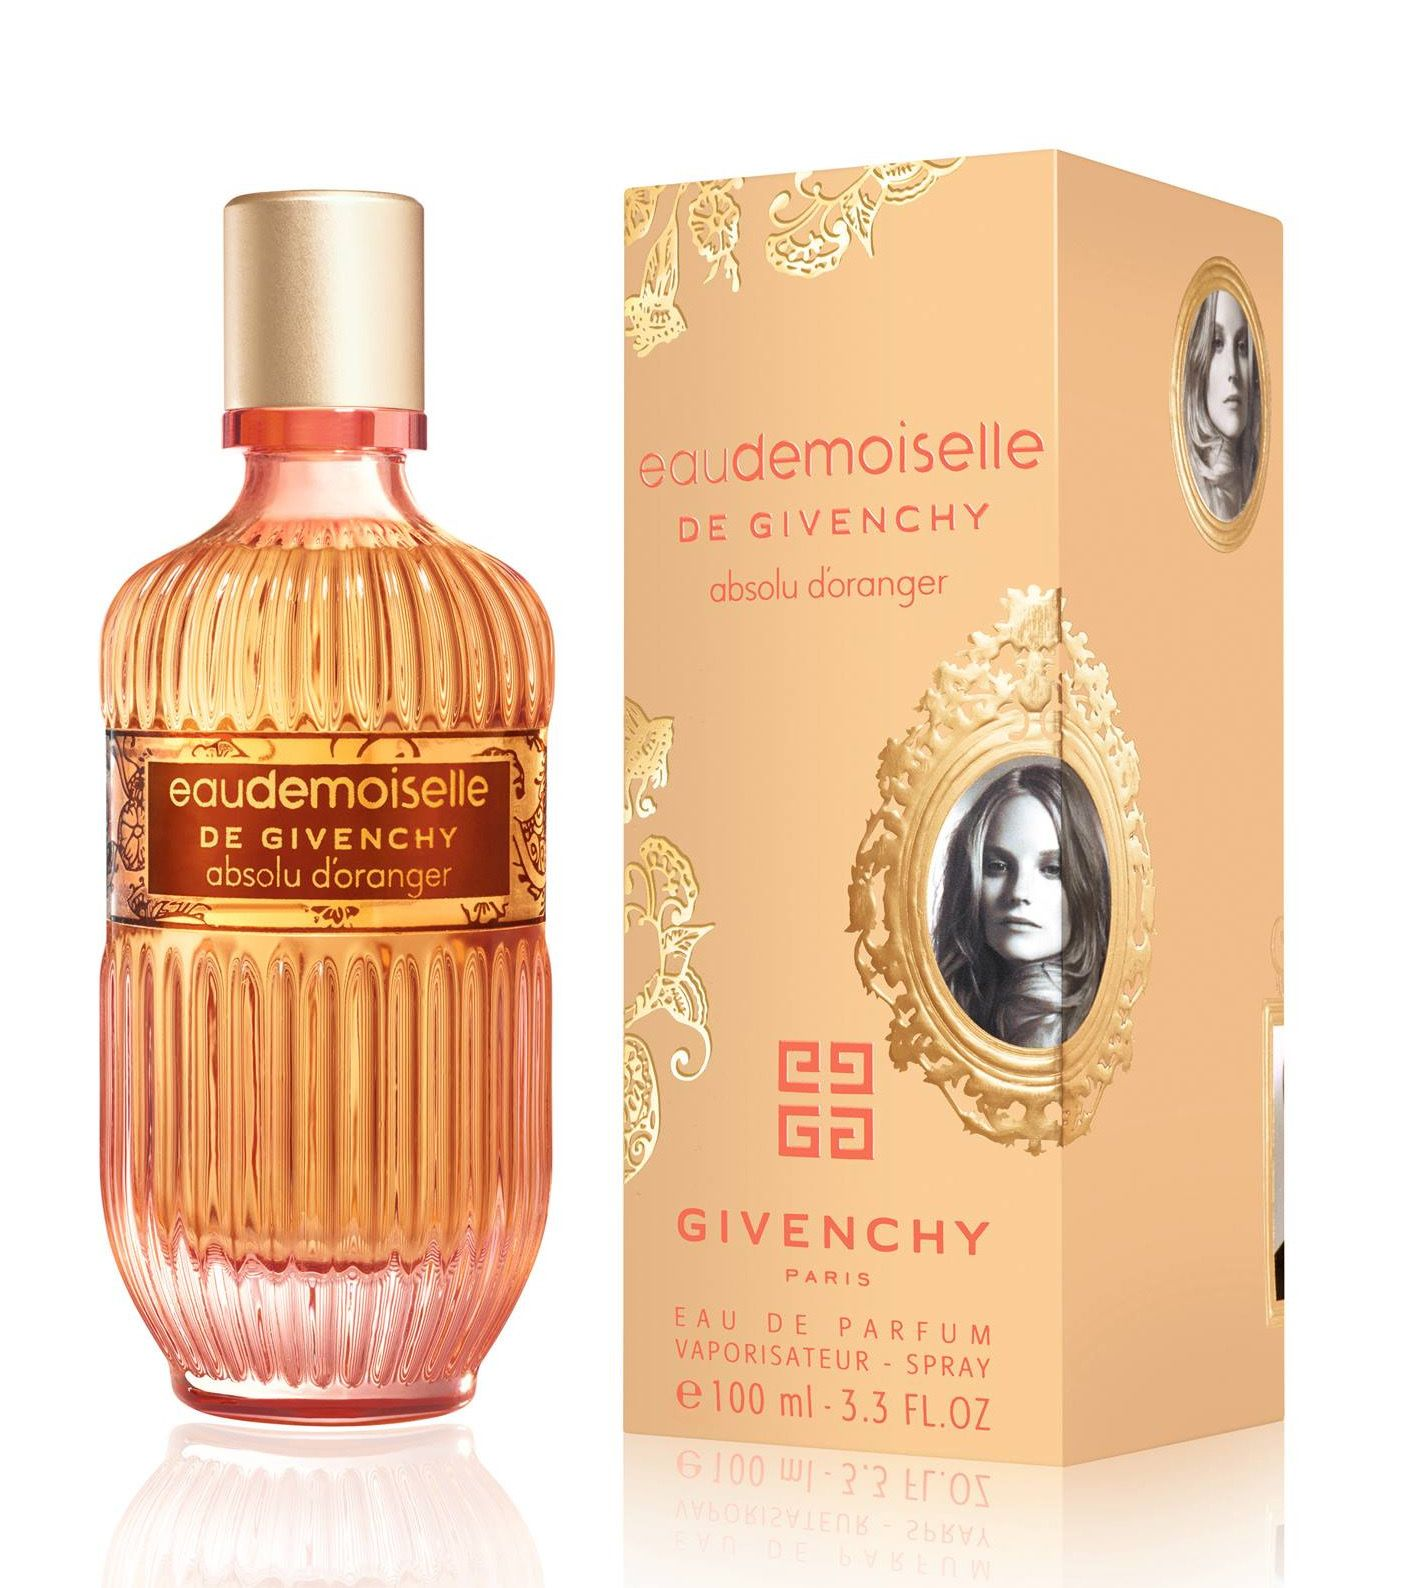 Pin On ❤️ Eaudemoiselle By AymanQ PerfumeGivenchy عطور 54qLRAj3